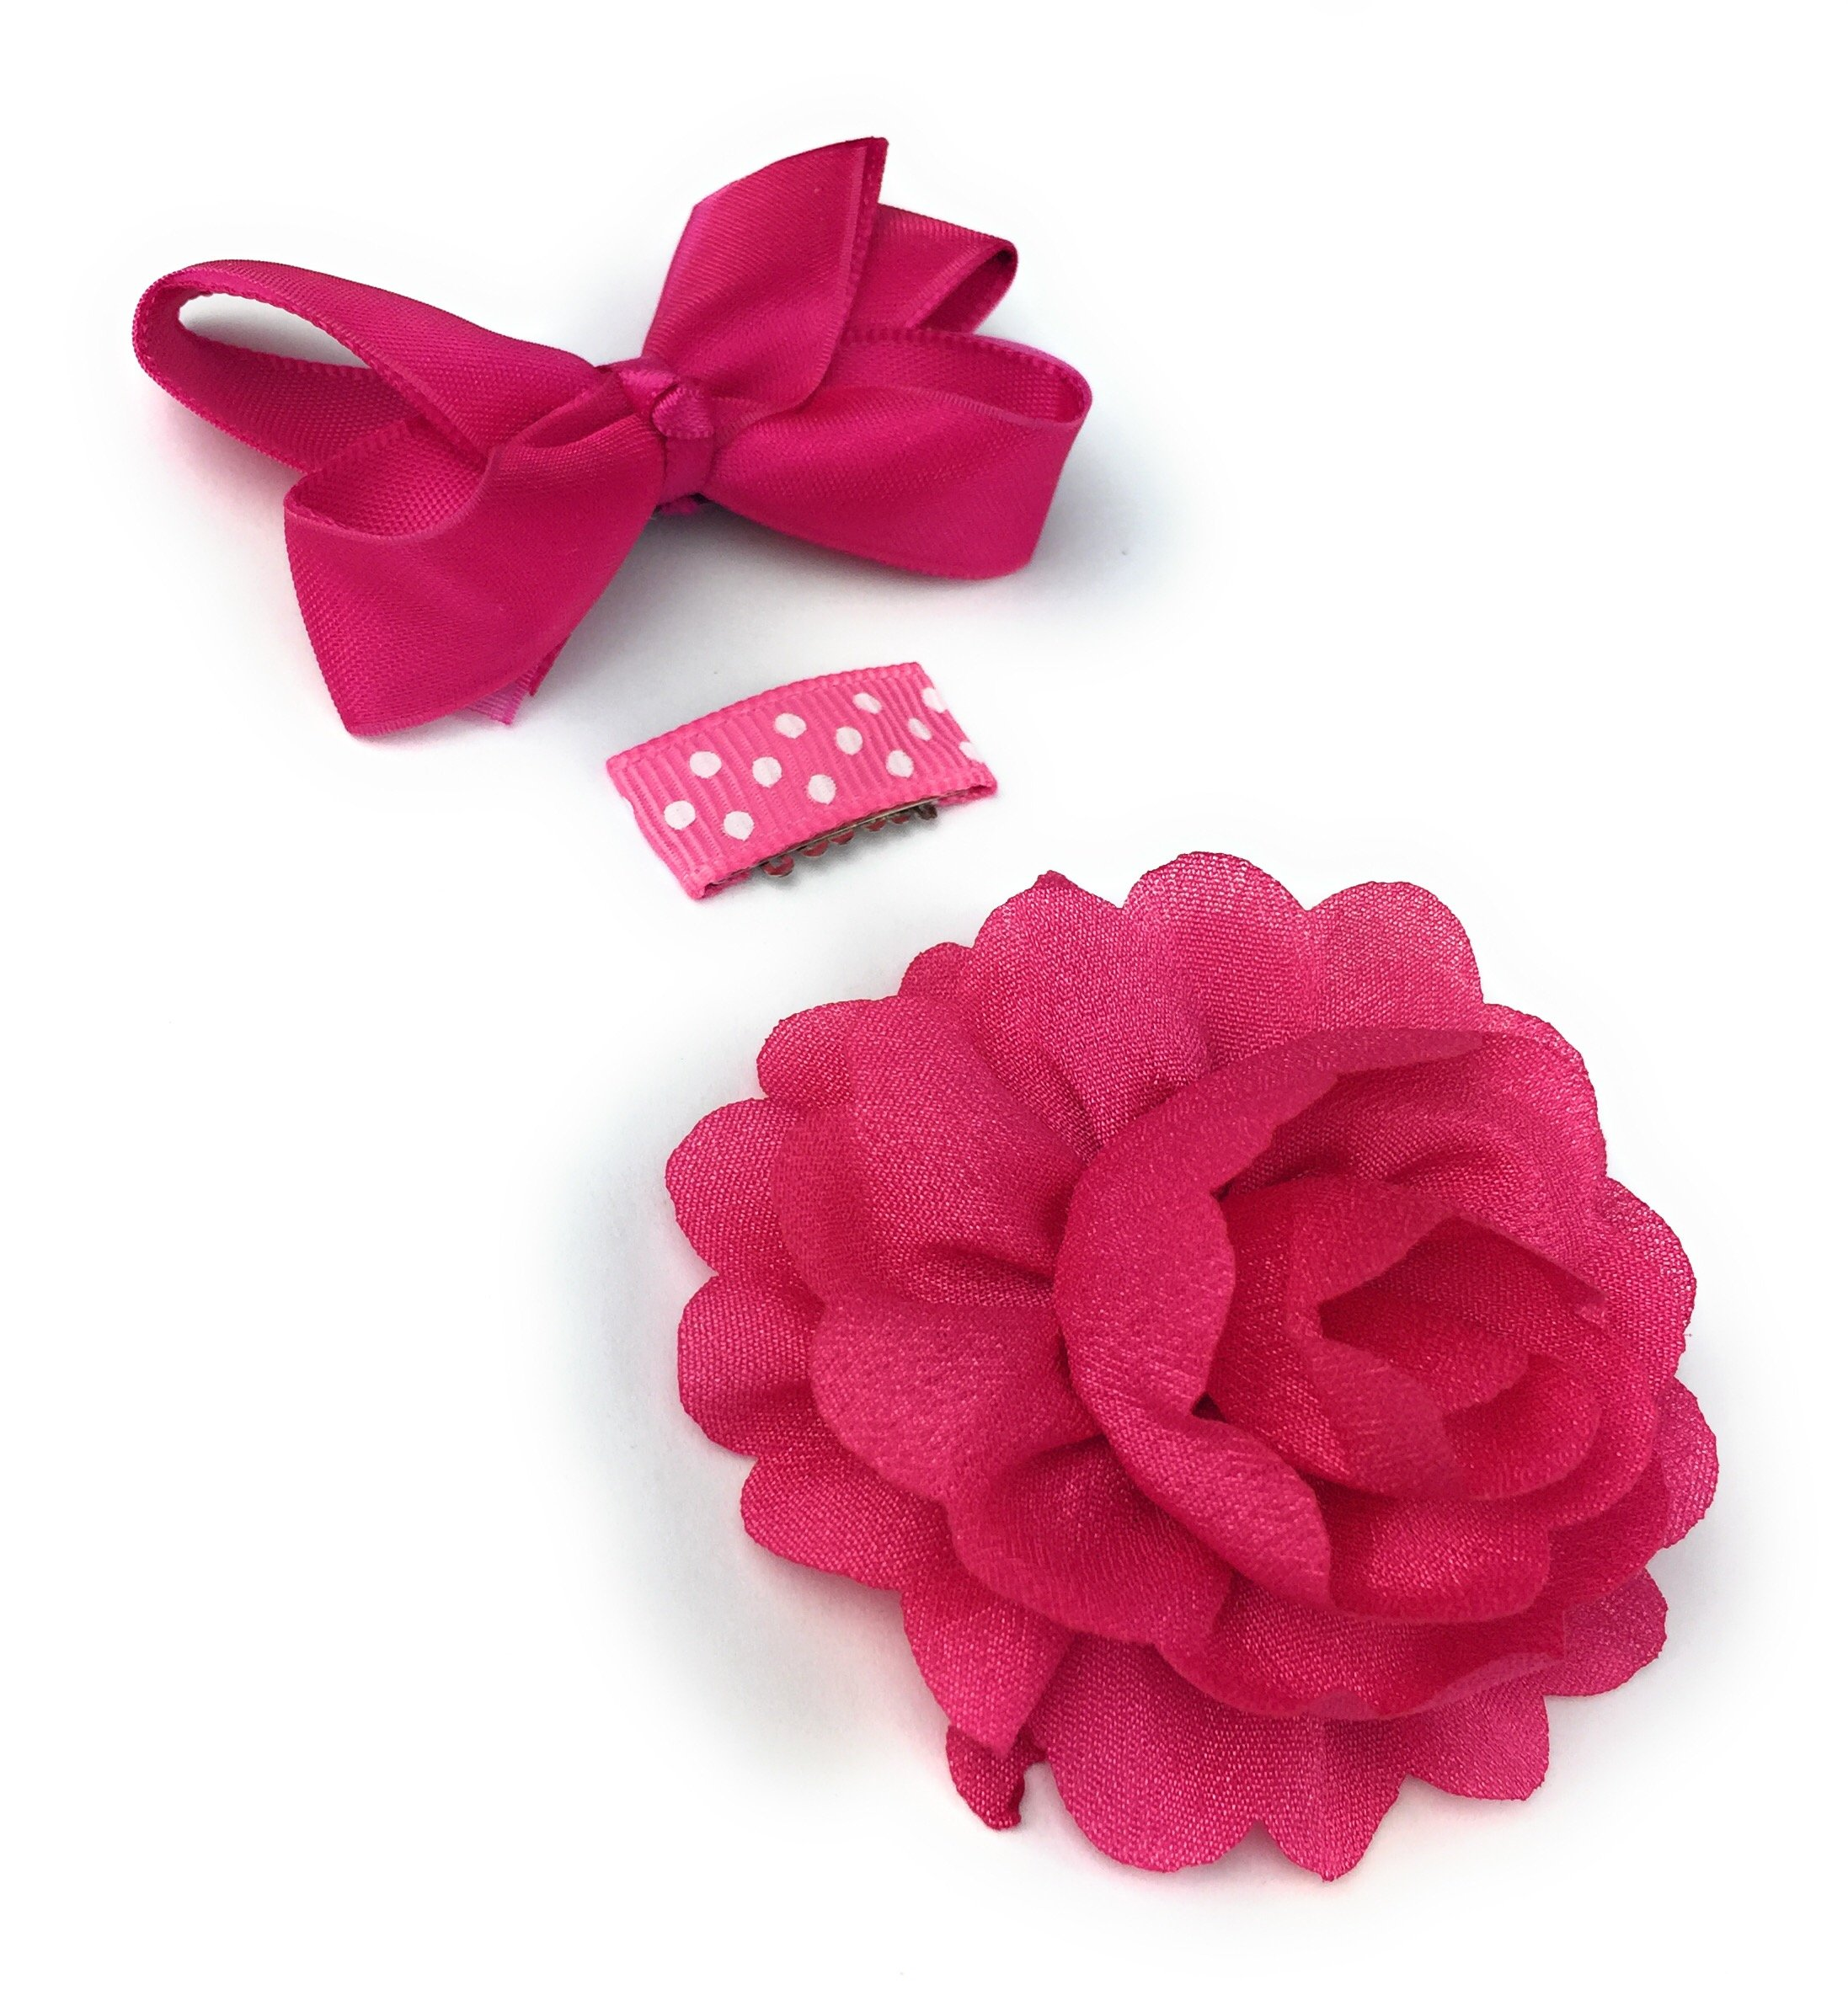 Baby Wisp Mini Latch Clip Satin Boutique Bow Grosgrain Ribbon Clip Flower Accessory Baby Girl Gift Set (Fuchsia) by Baby Wisp (Image #9)